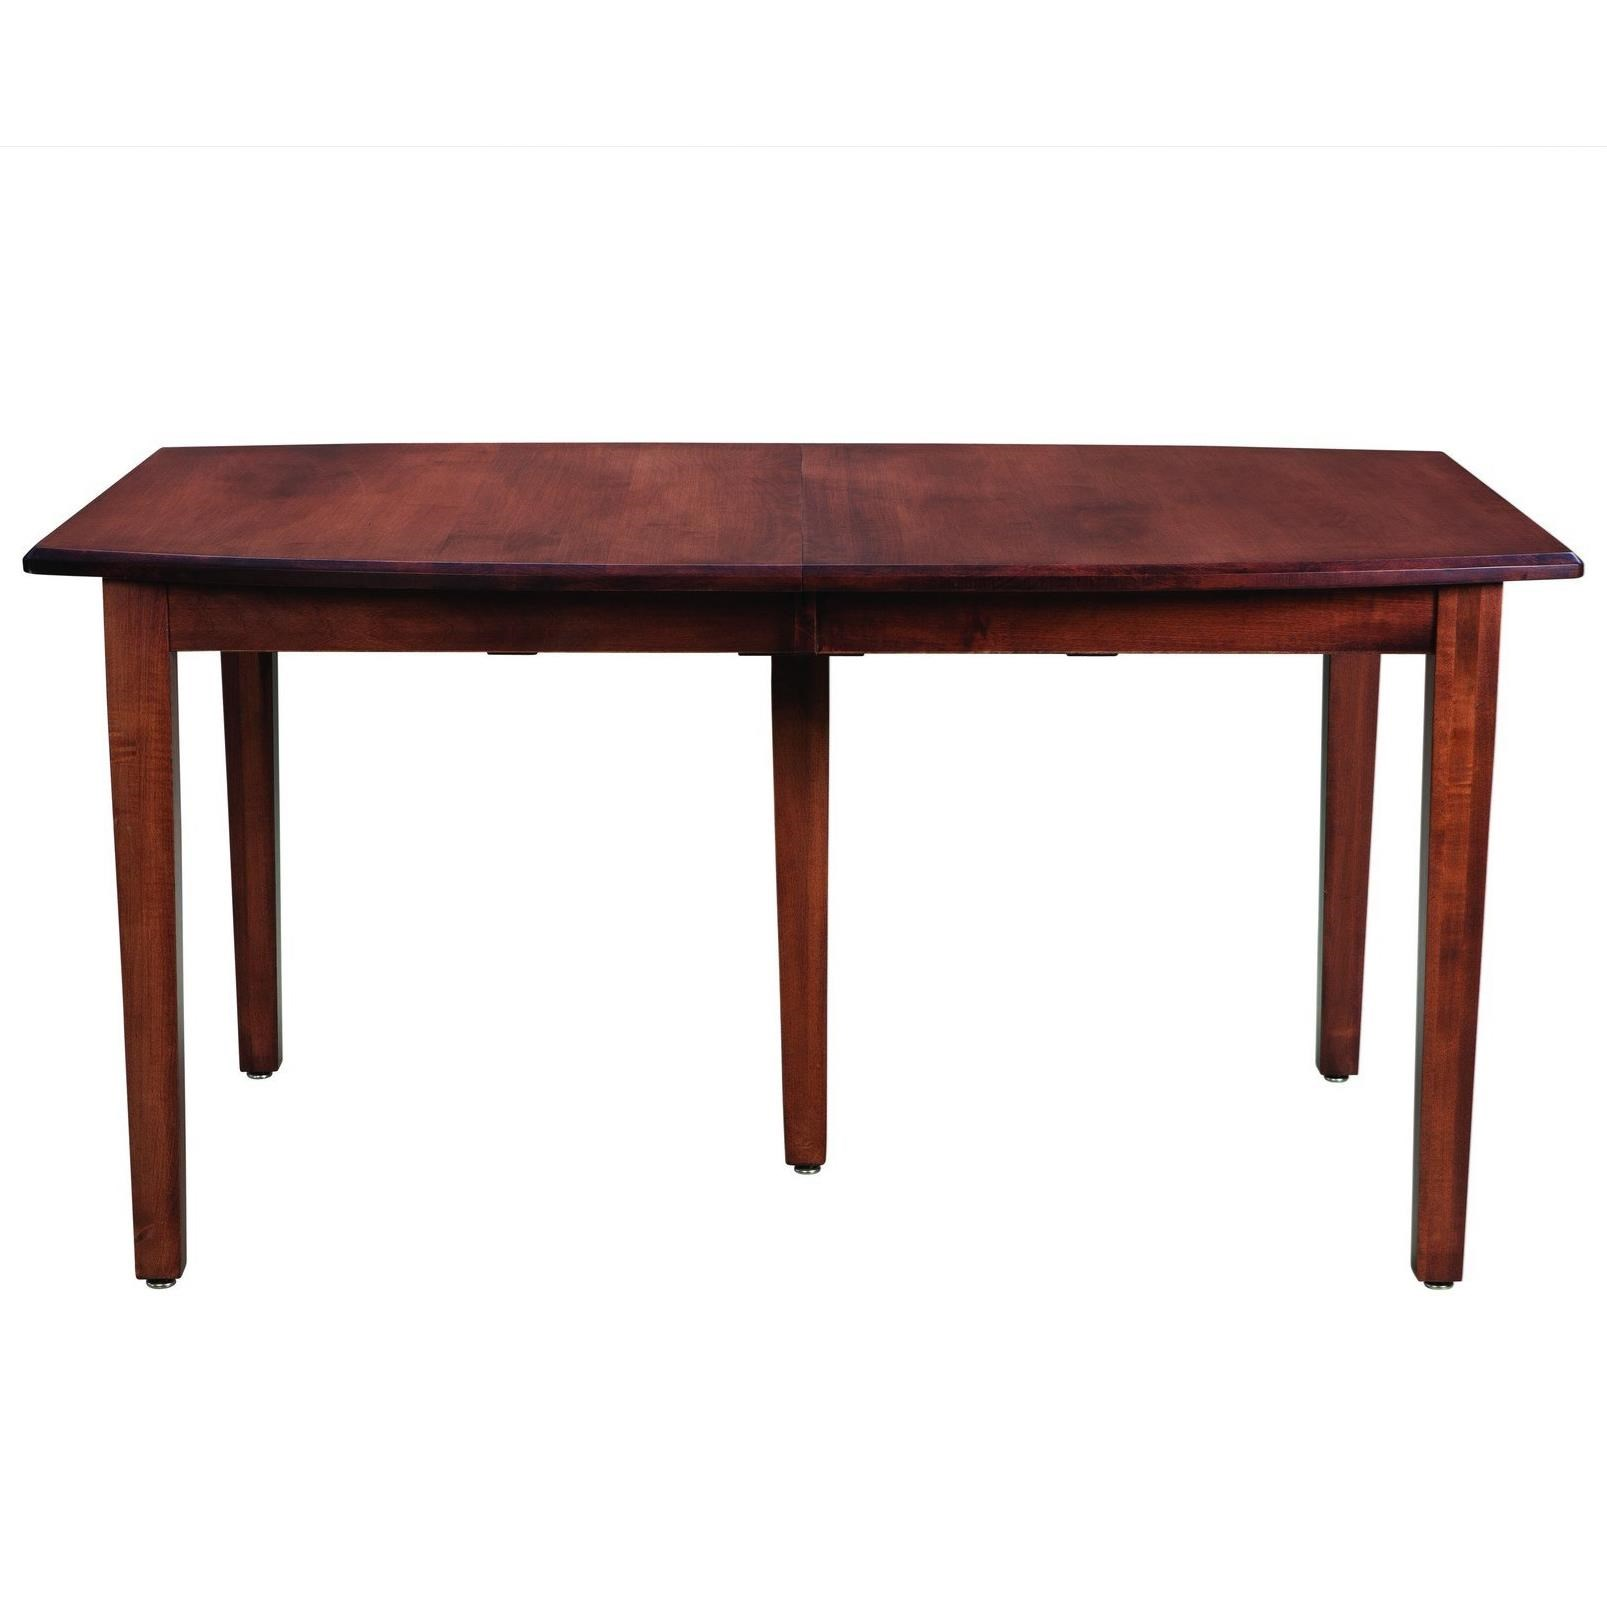 Prestige  Customizable Boat Shaped Table by Palettes by Winesburg at Dinette Depot